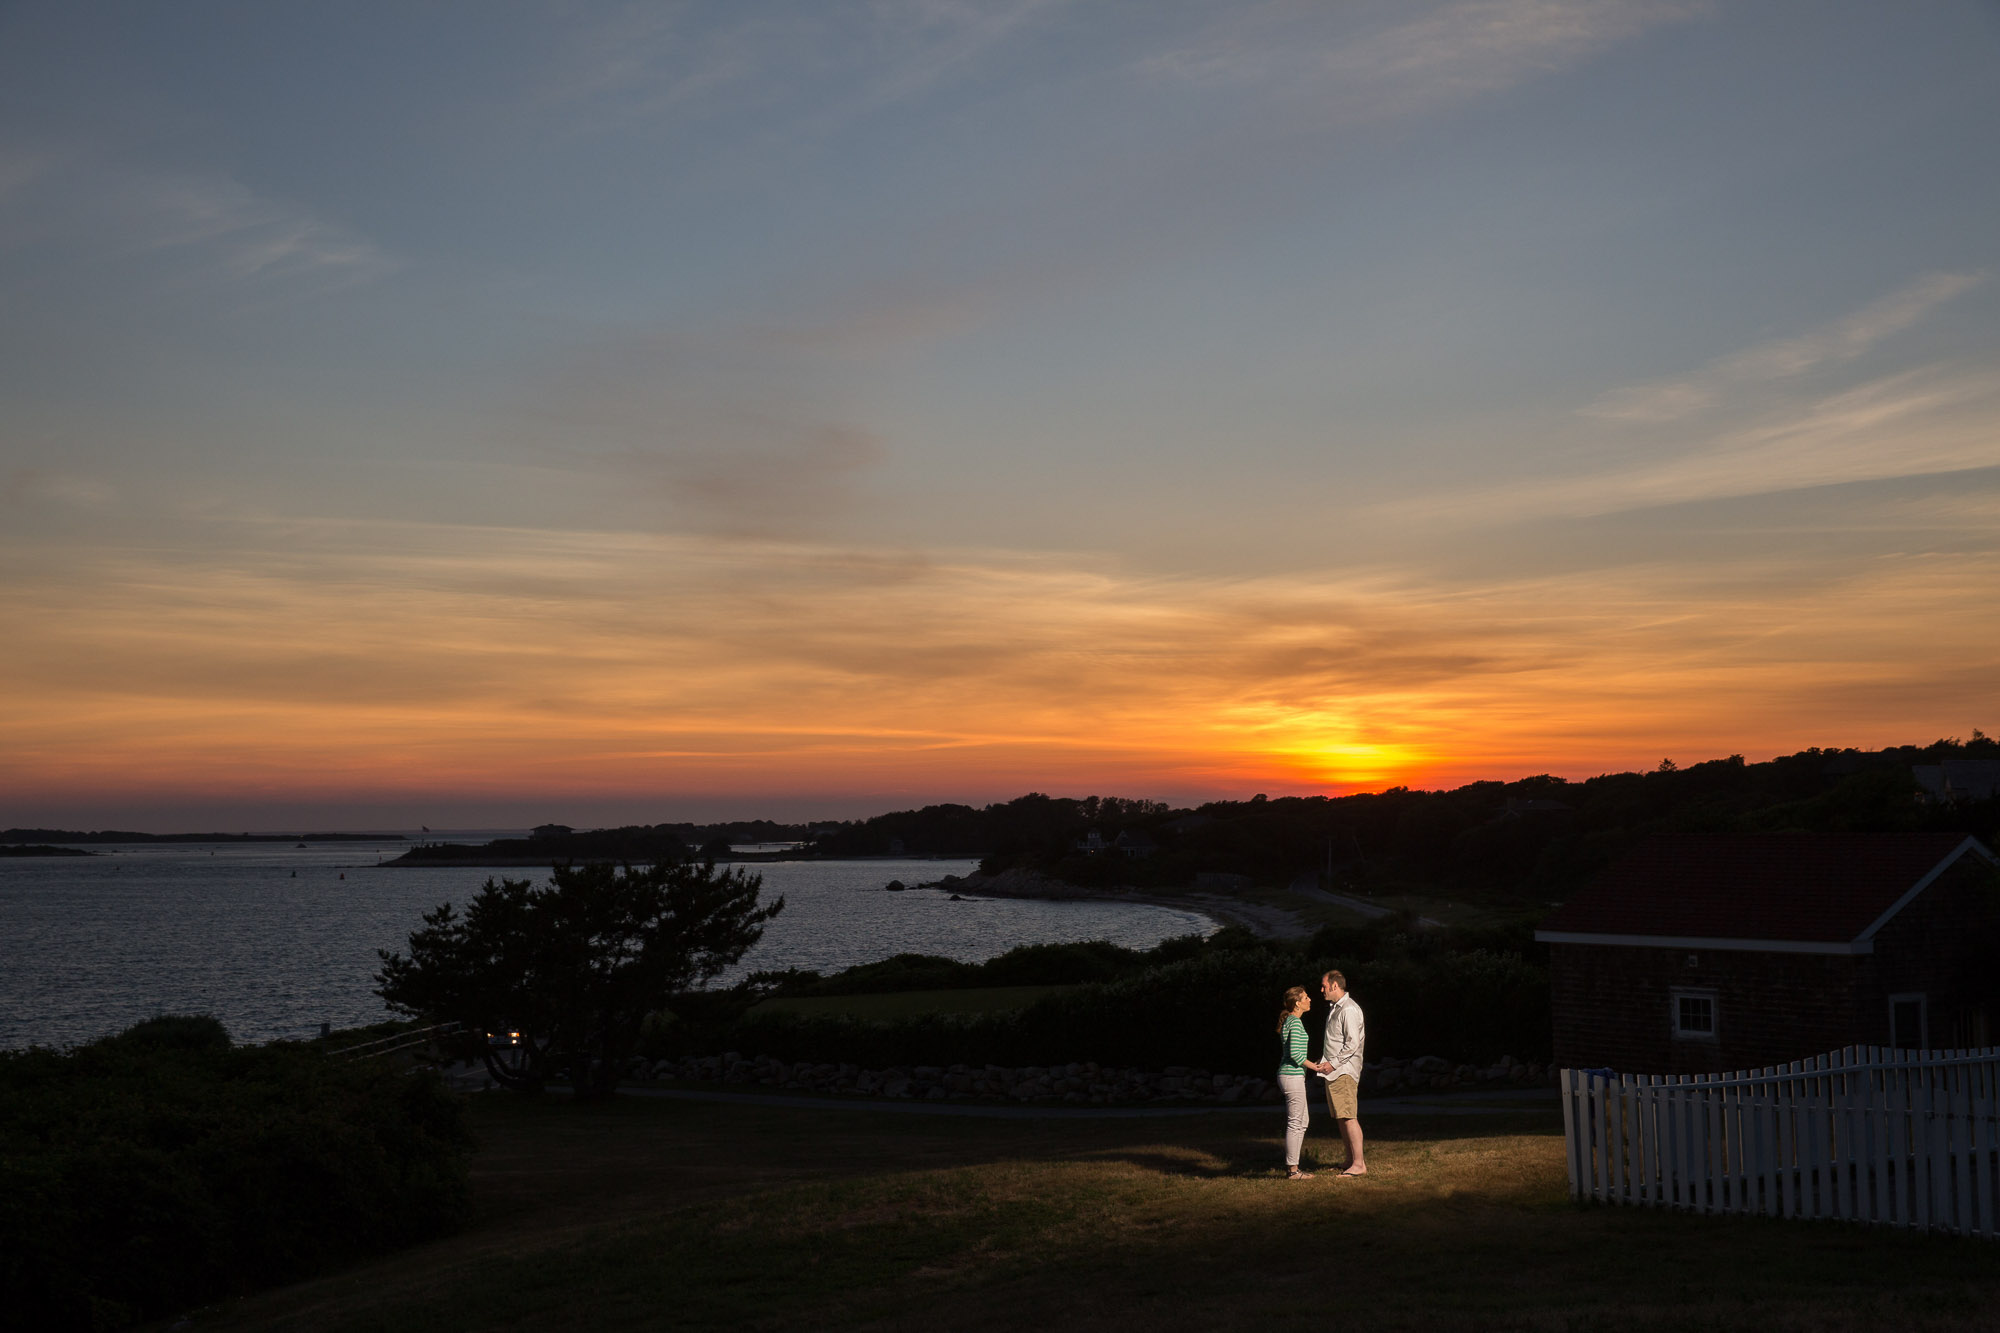 boston-wedding-photographer-26-north-studios-cape-cod-engagement-sunset.jpg